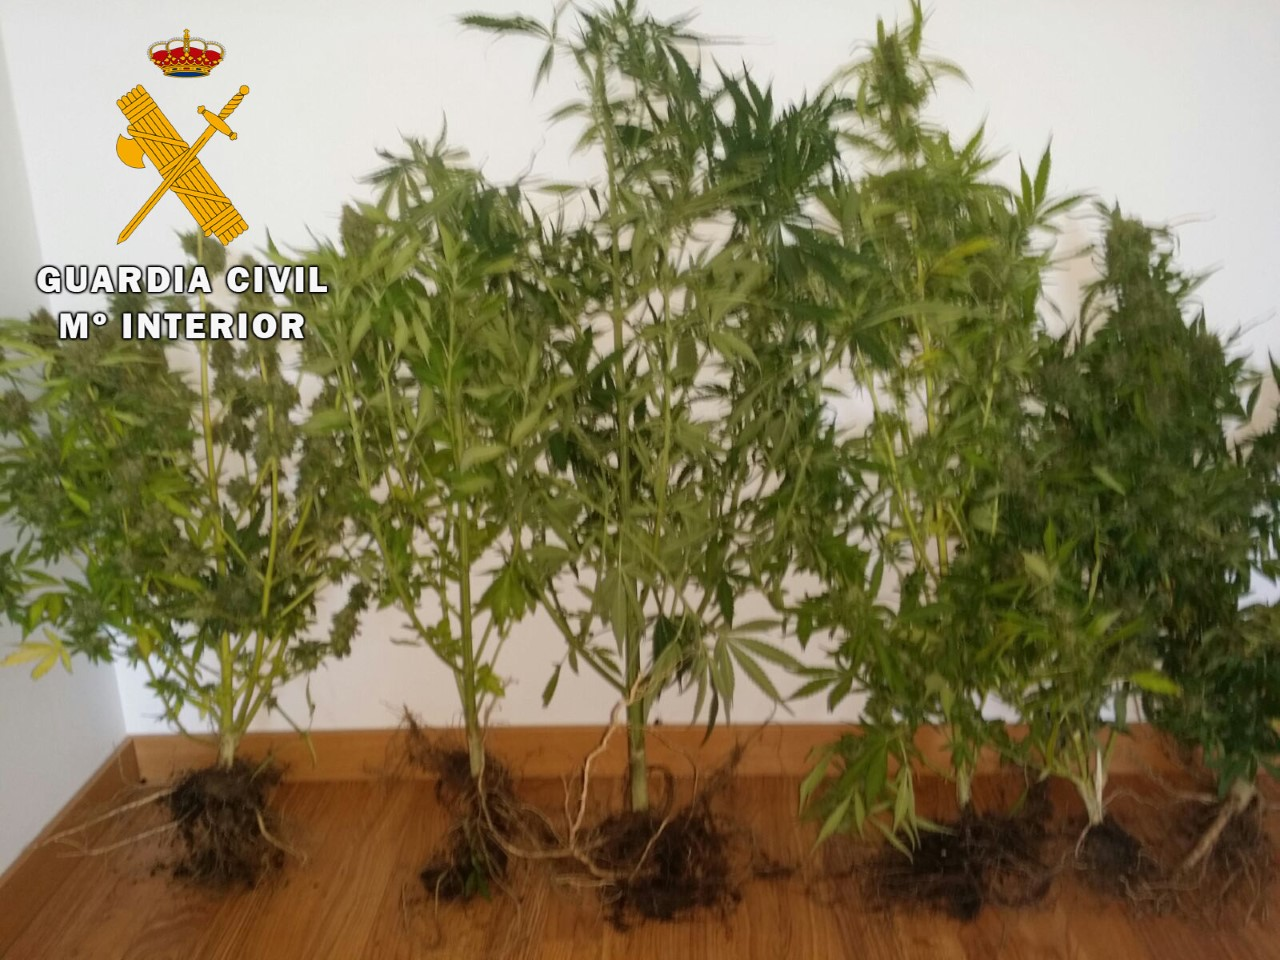 guardia civil avila-18-08-16-Marihuana